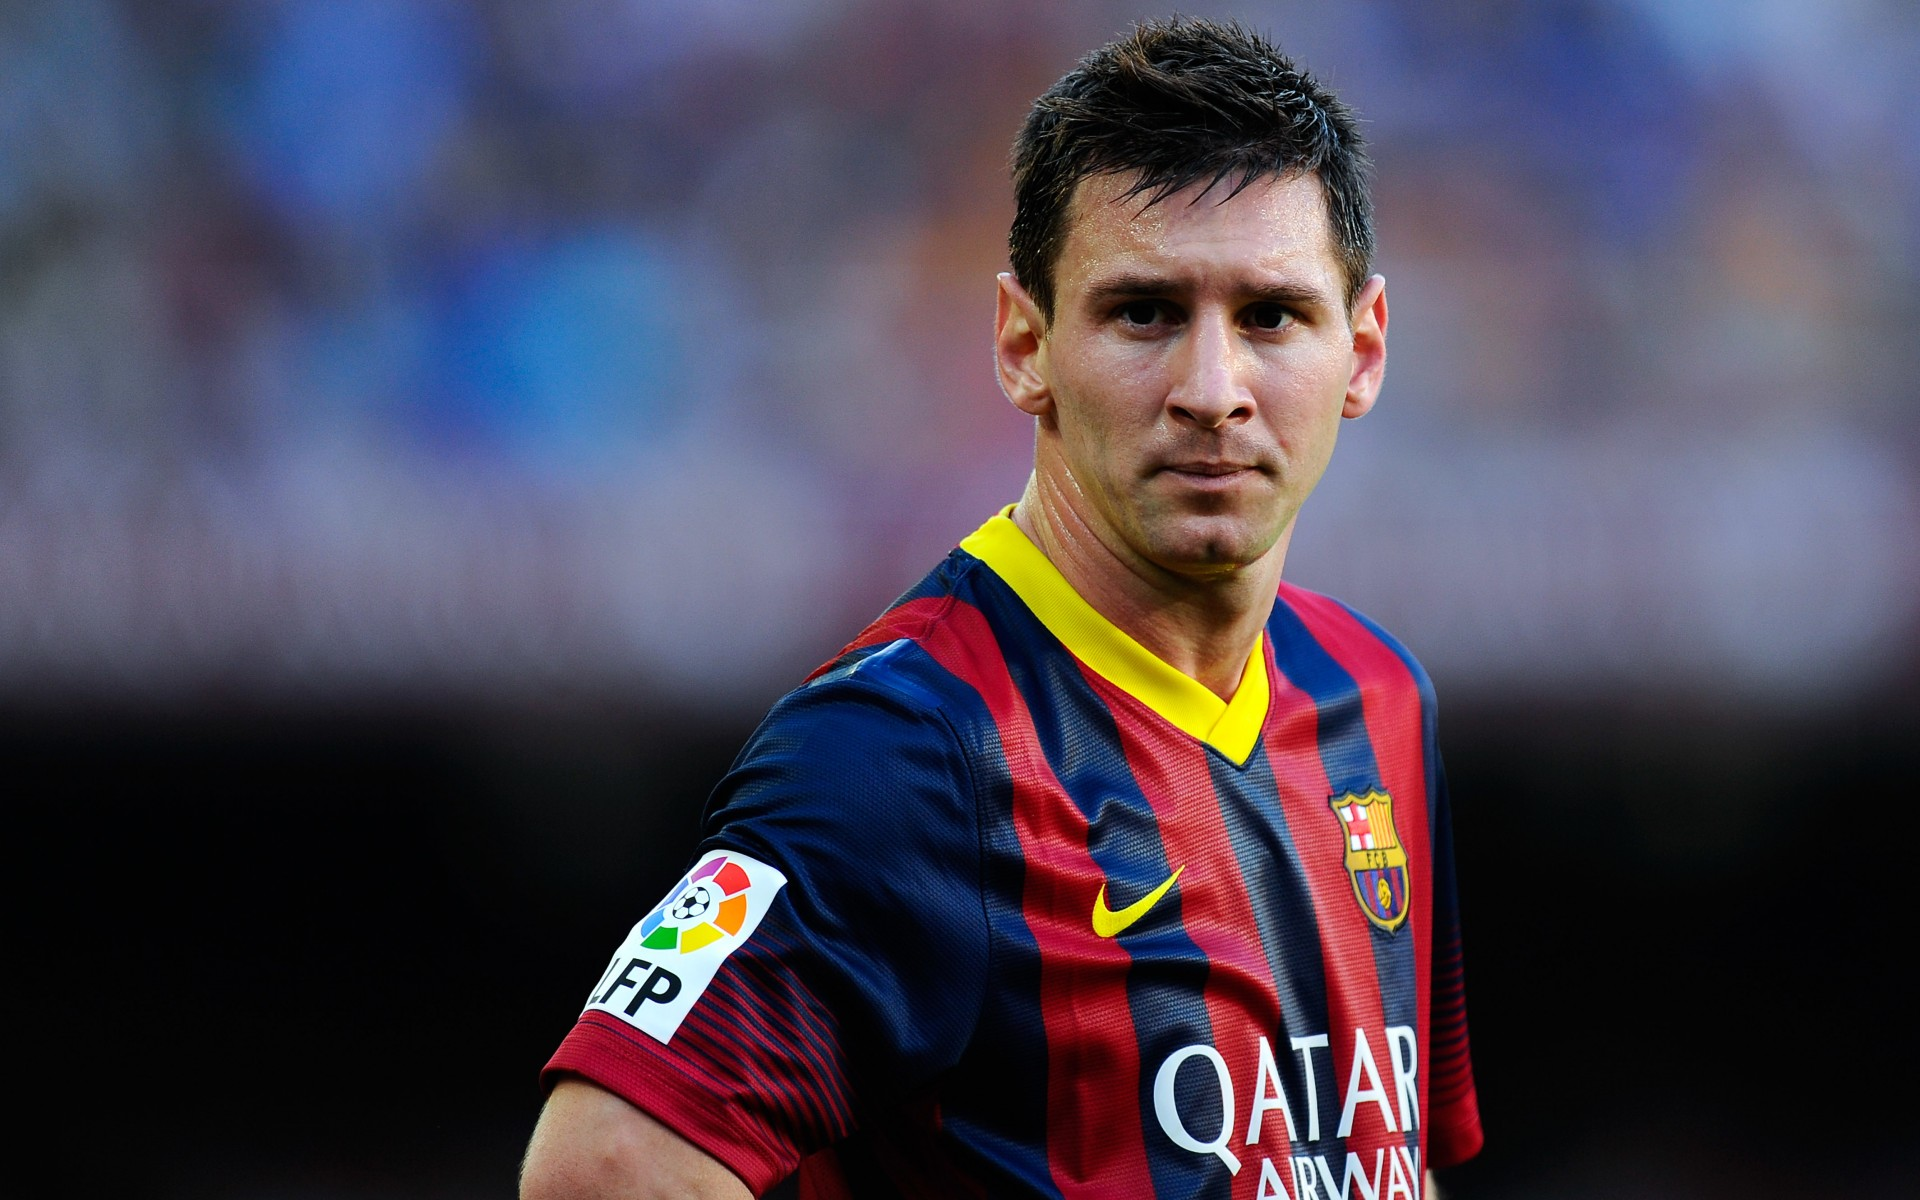 Messi Football Wallpapers HD 1920x1200